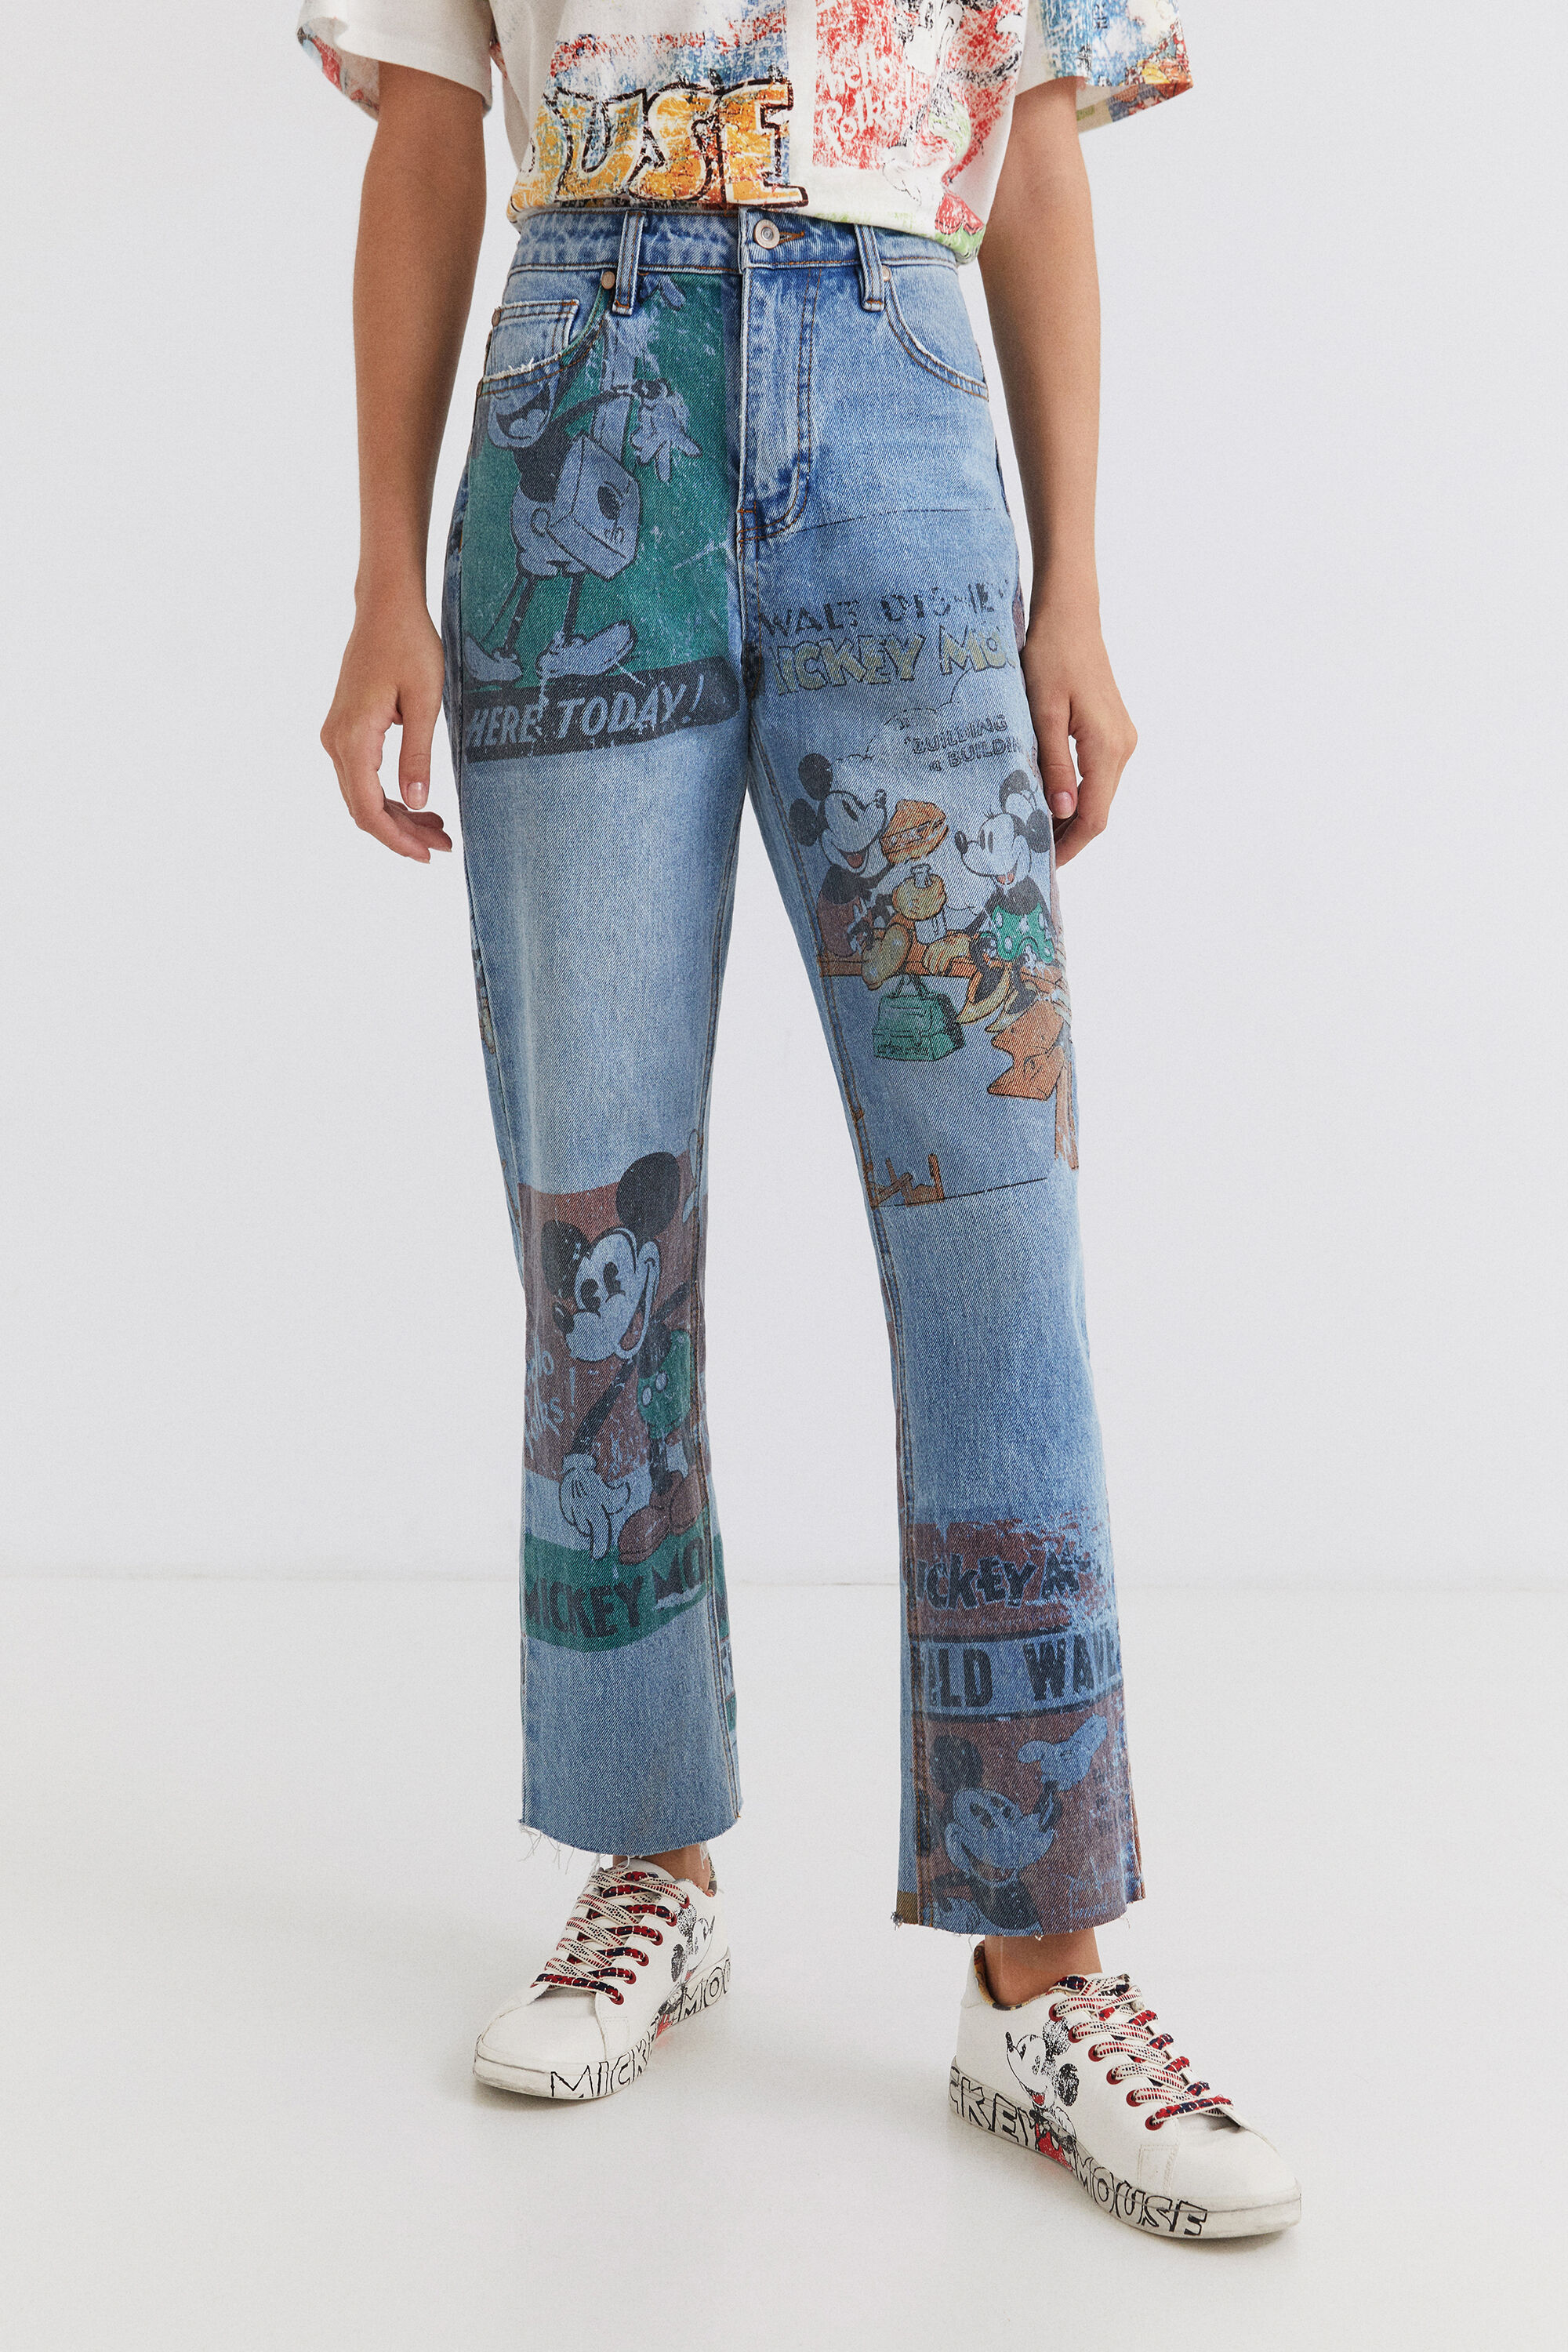 Hosen - Straight Cropped Jeans Micky Maus BLUE 40  - Onlineshop Desigual